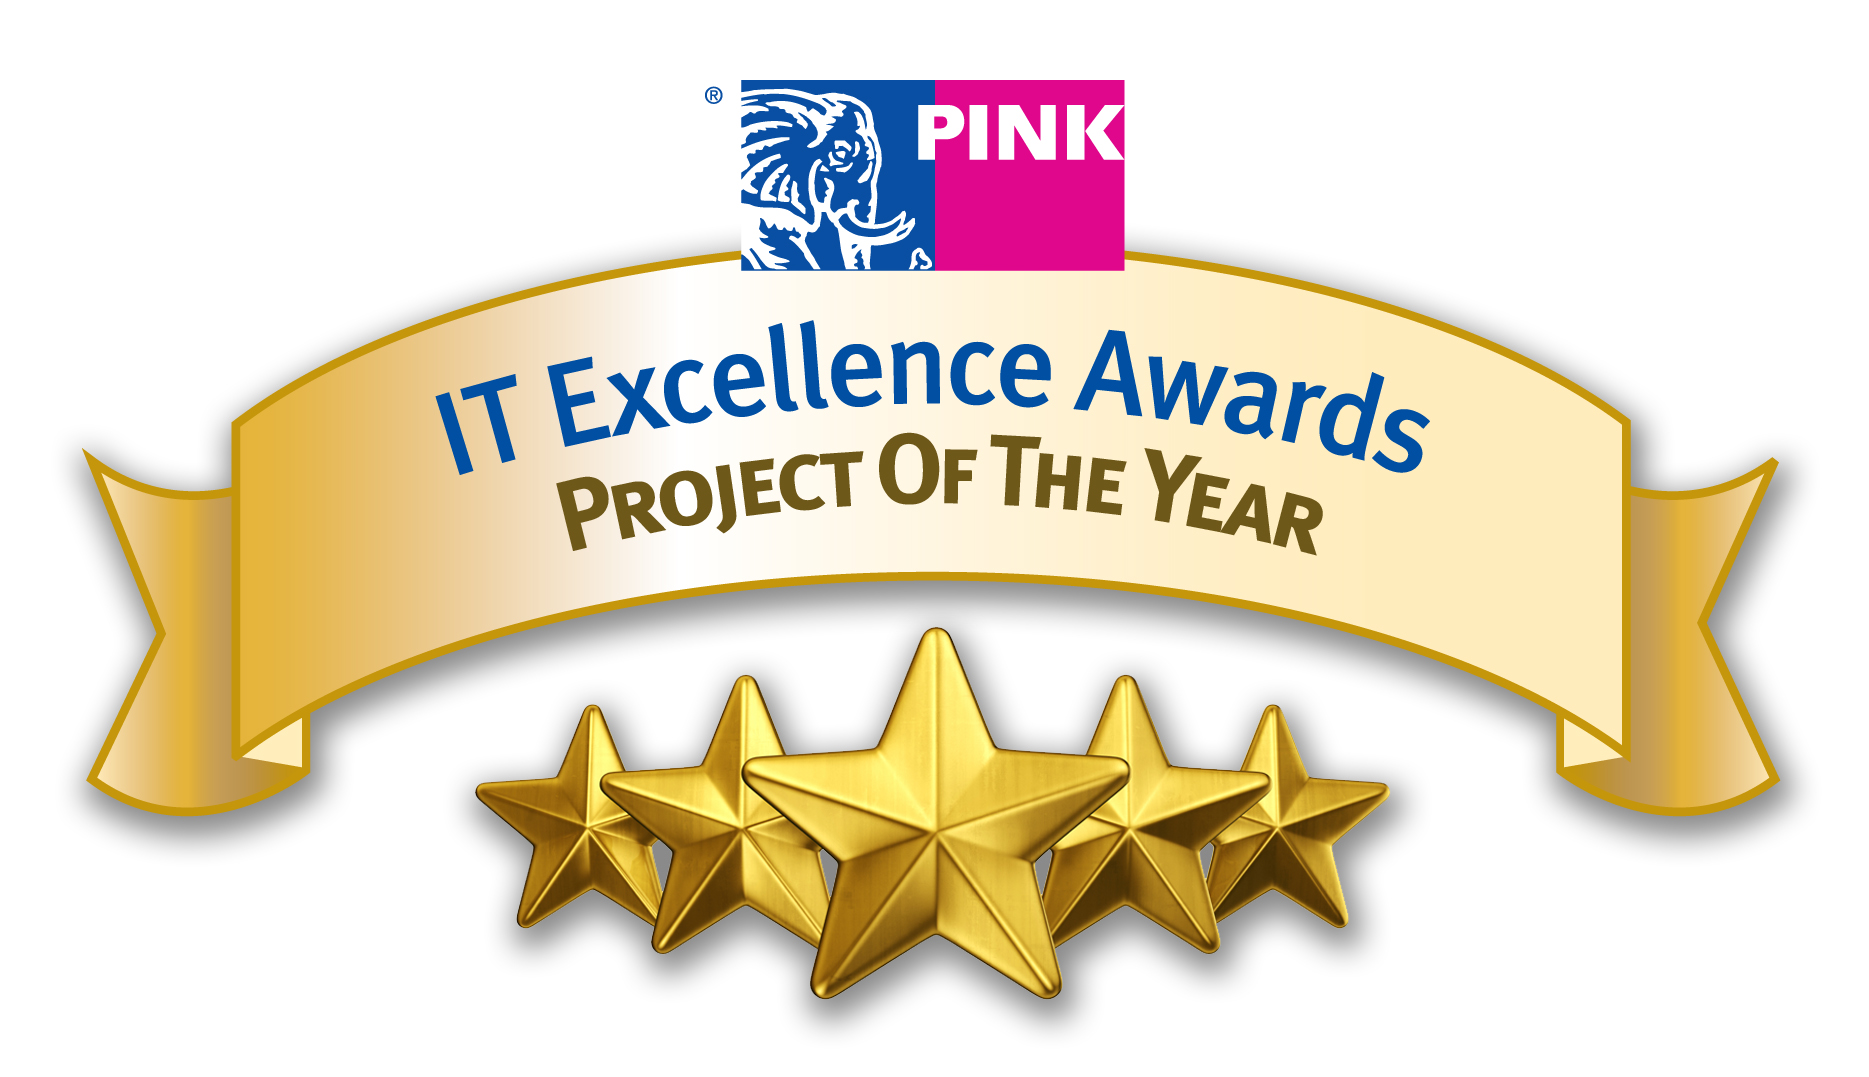 IT Excellence Awards Project of the Year